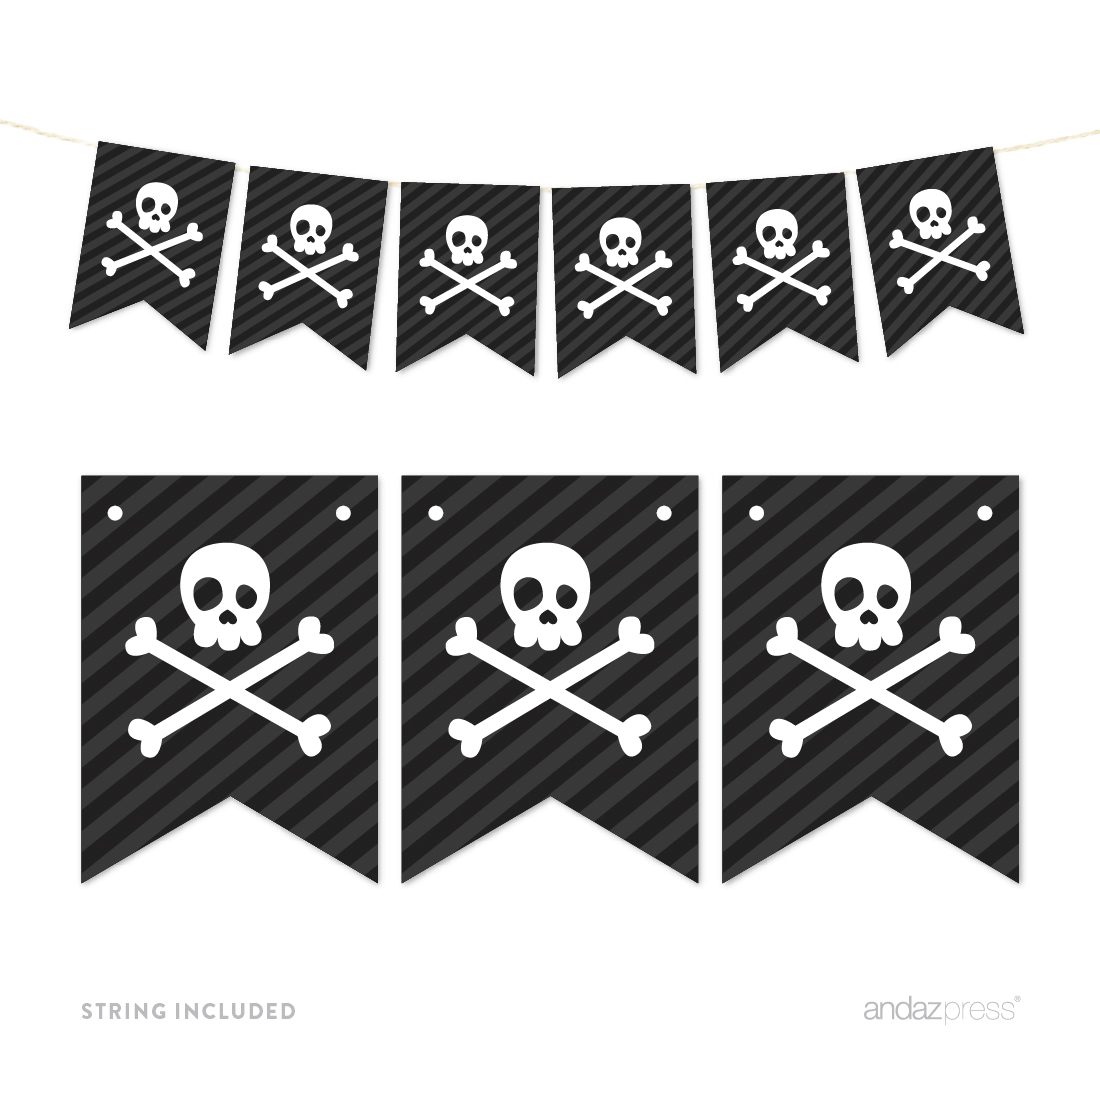 Pennant Party Banner Pirate Skull and Crossbones